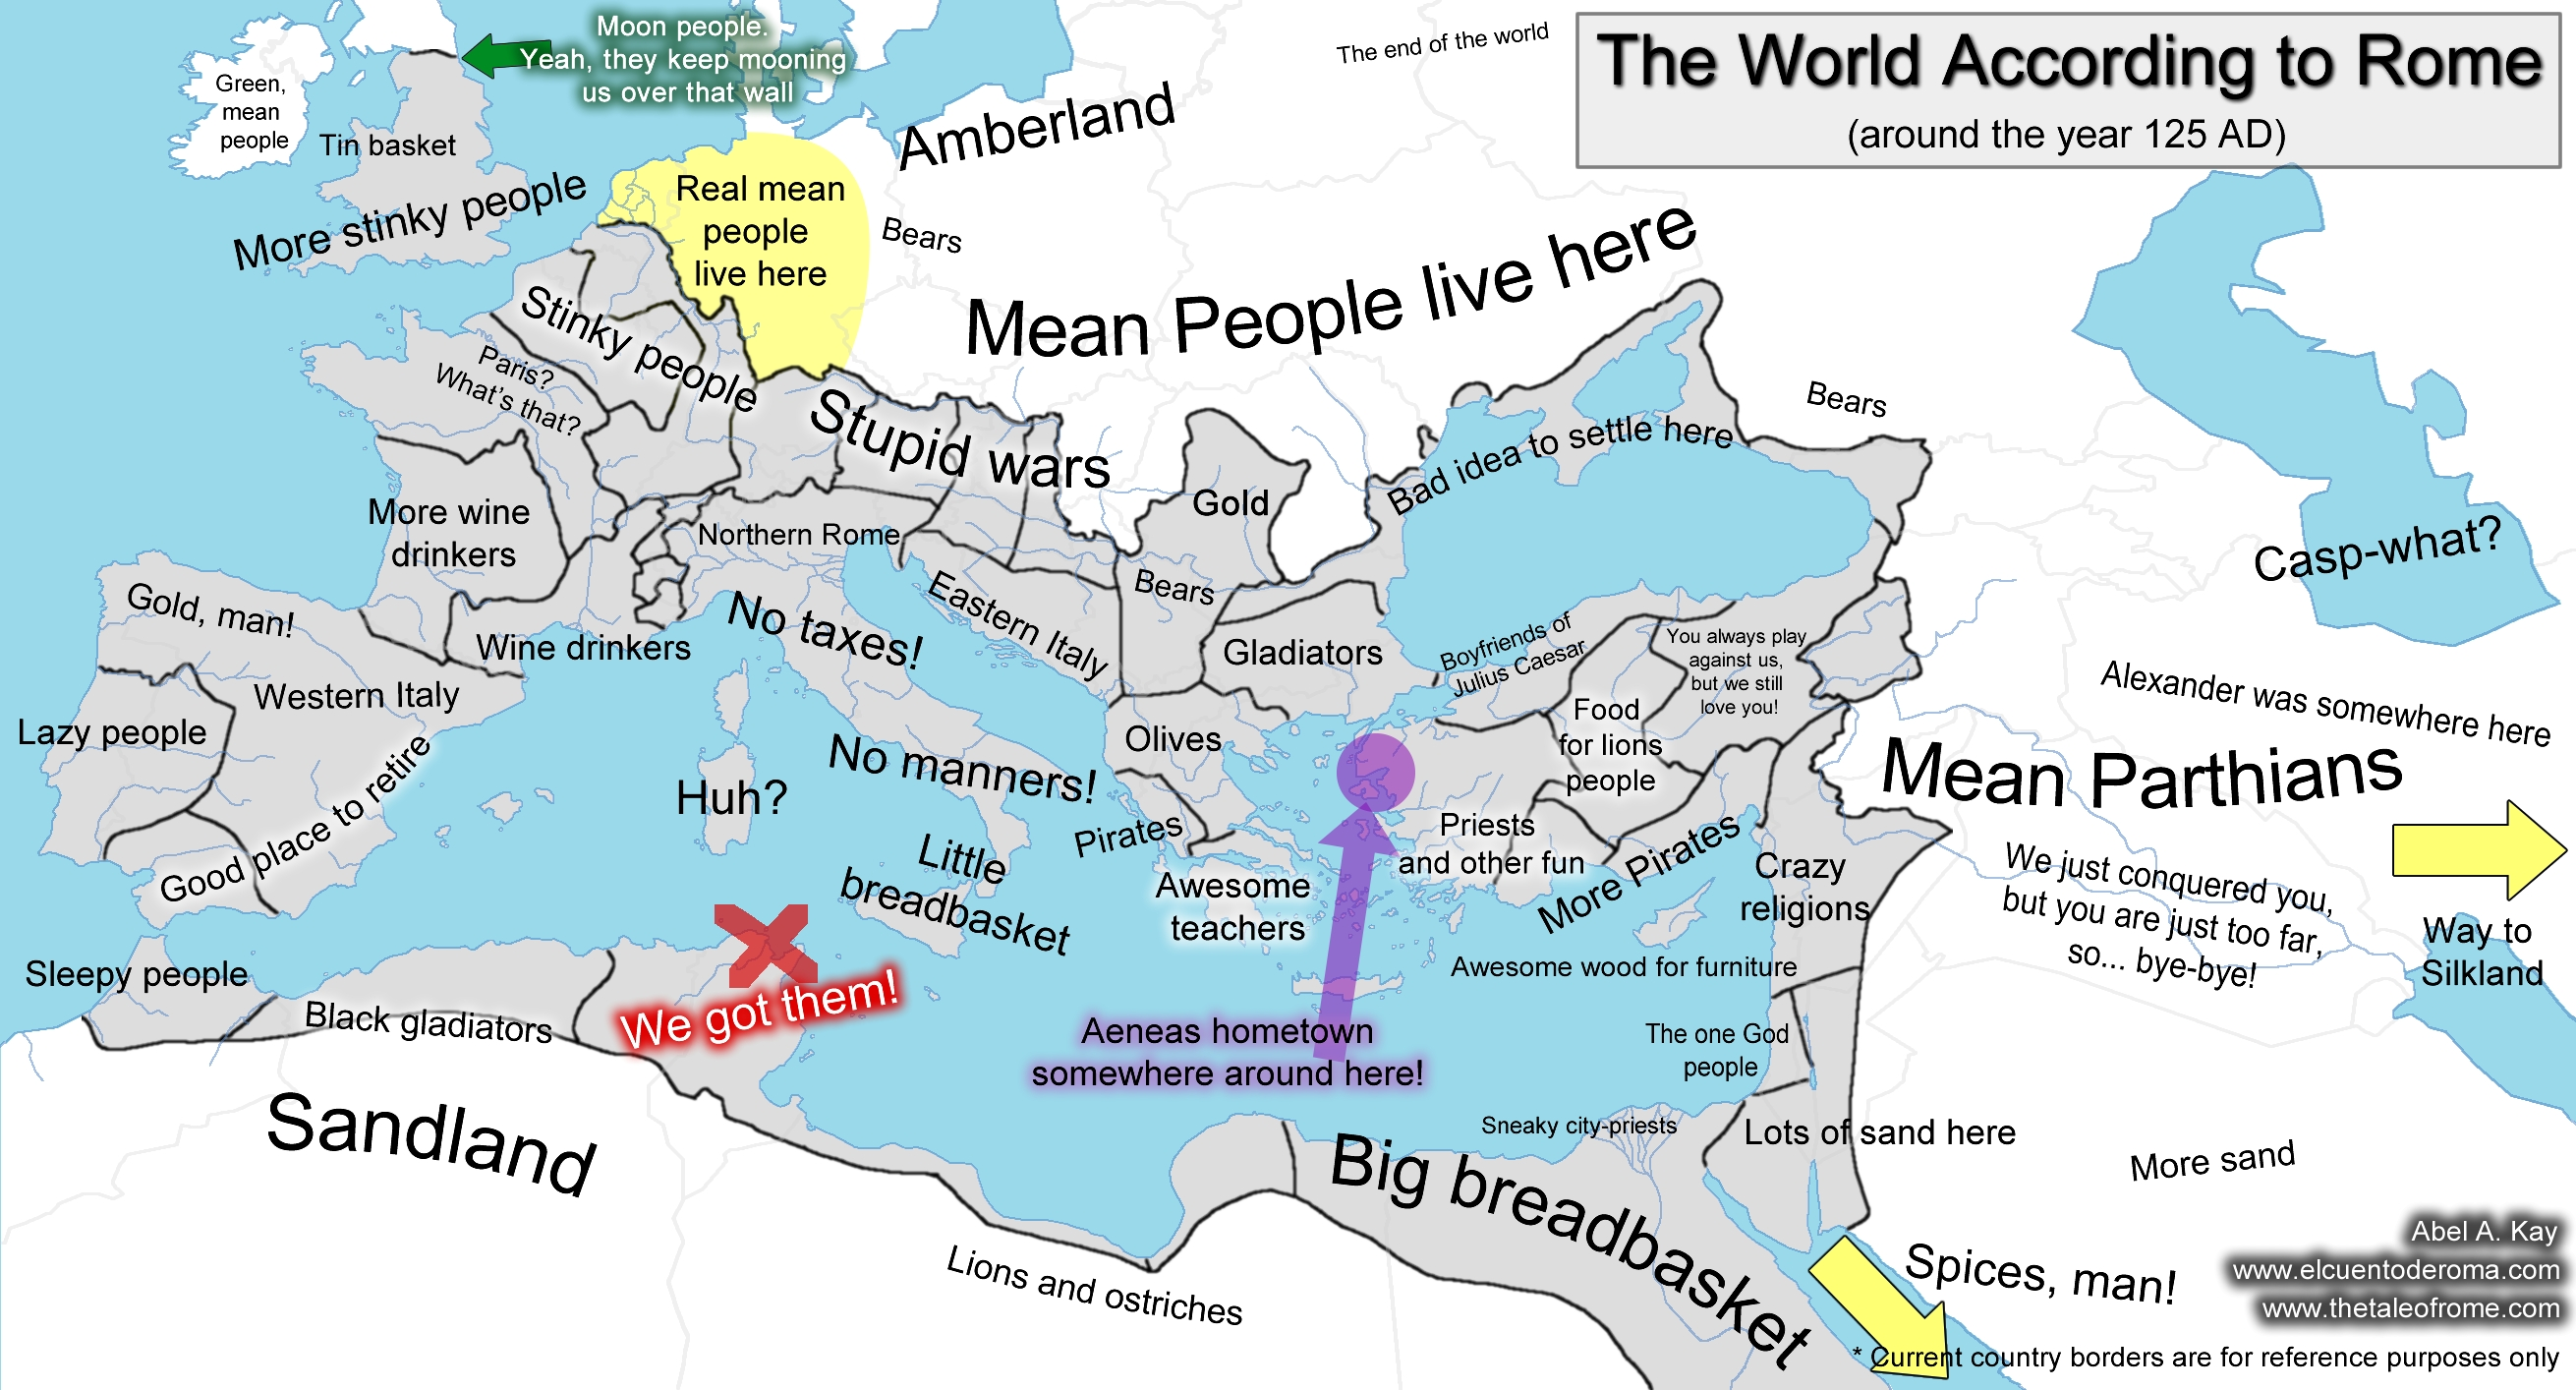 The World According to Rome